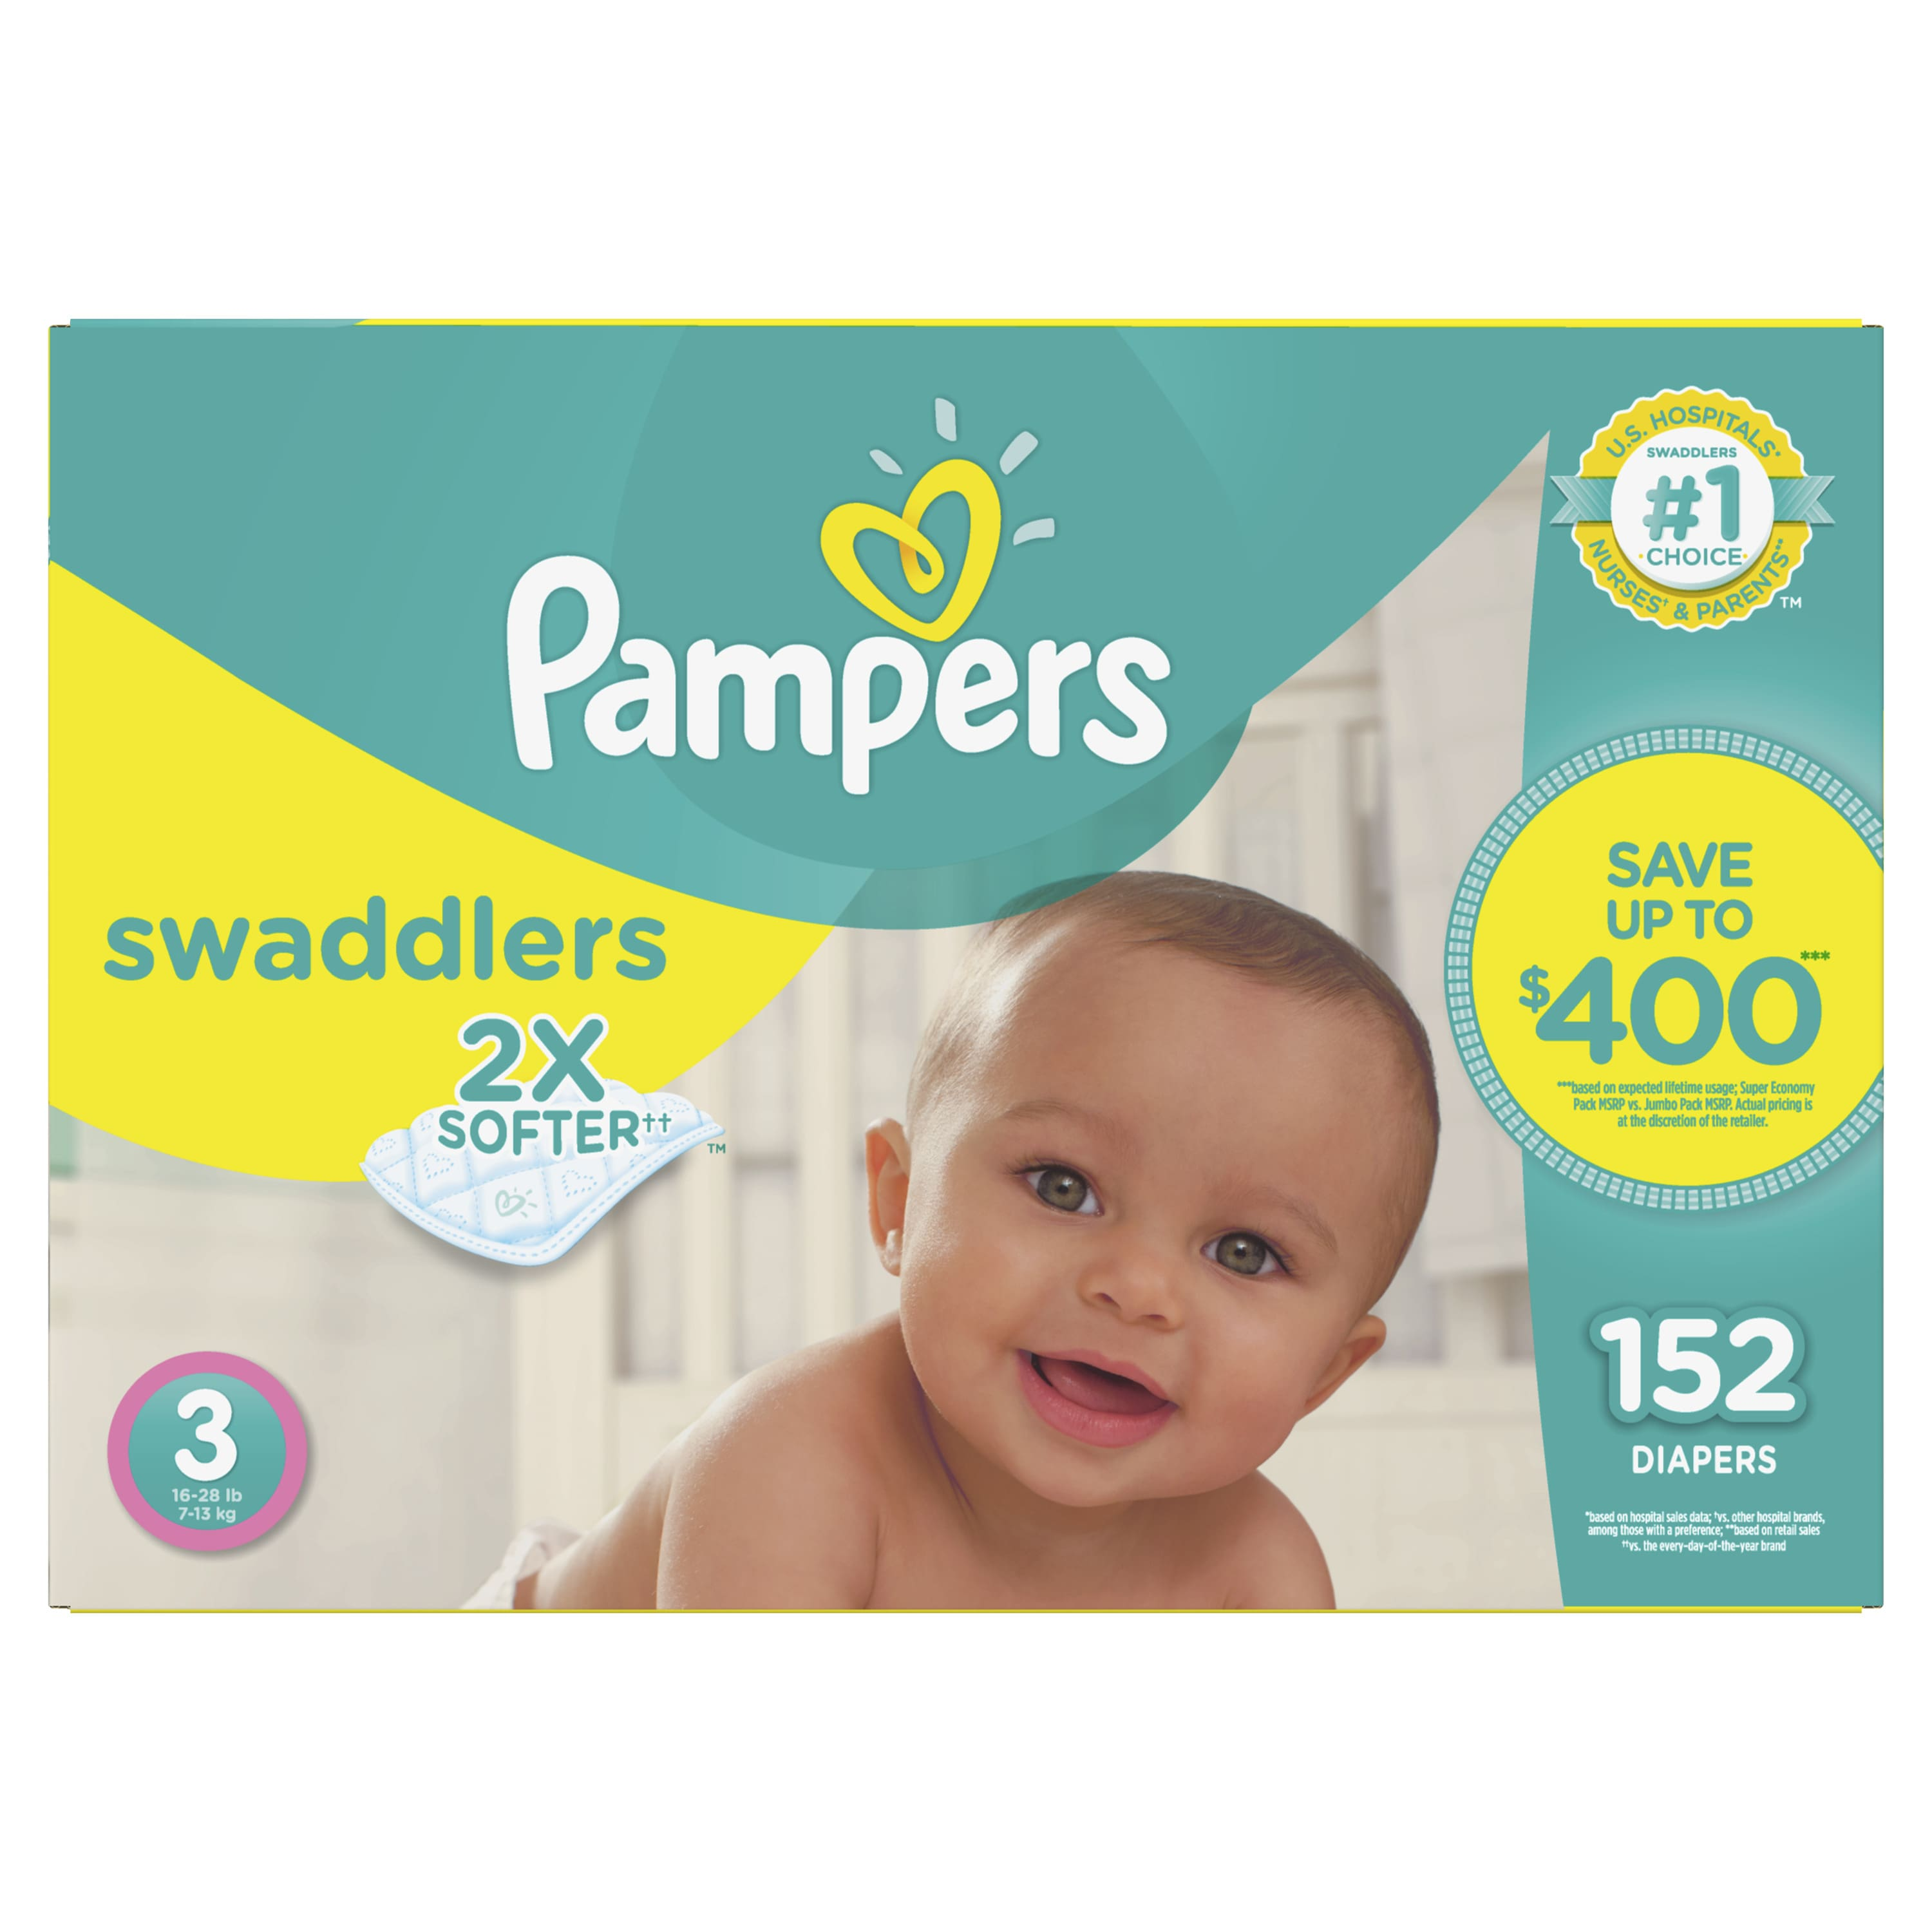 $8 off Pampers Diapers and Wipes (when you buy 2 at Sam's Club)